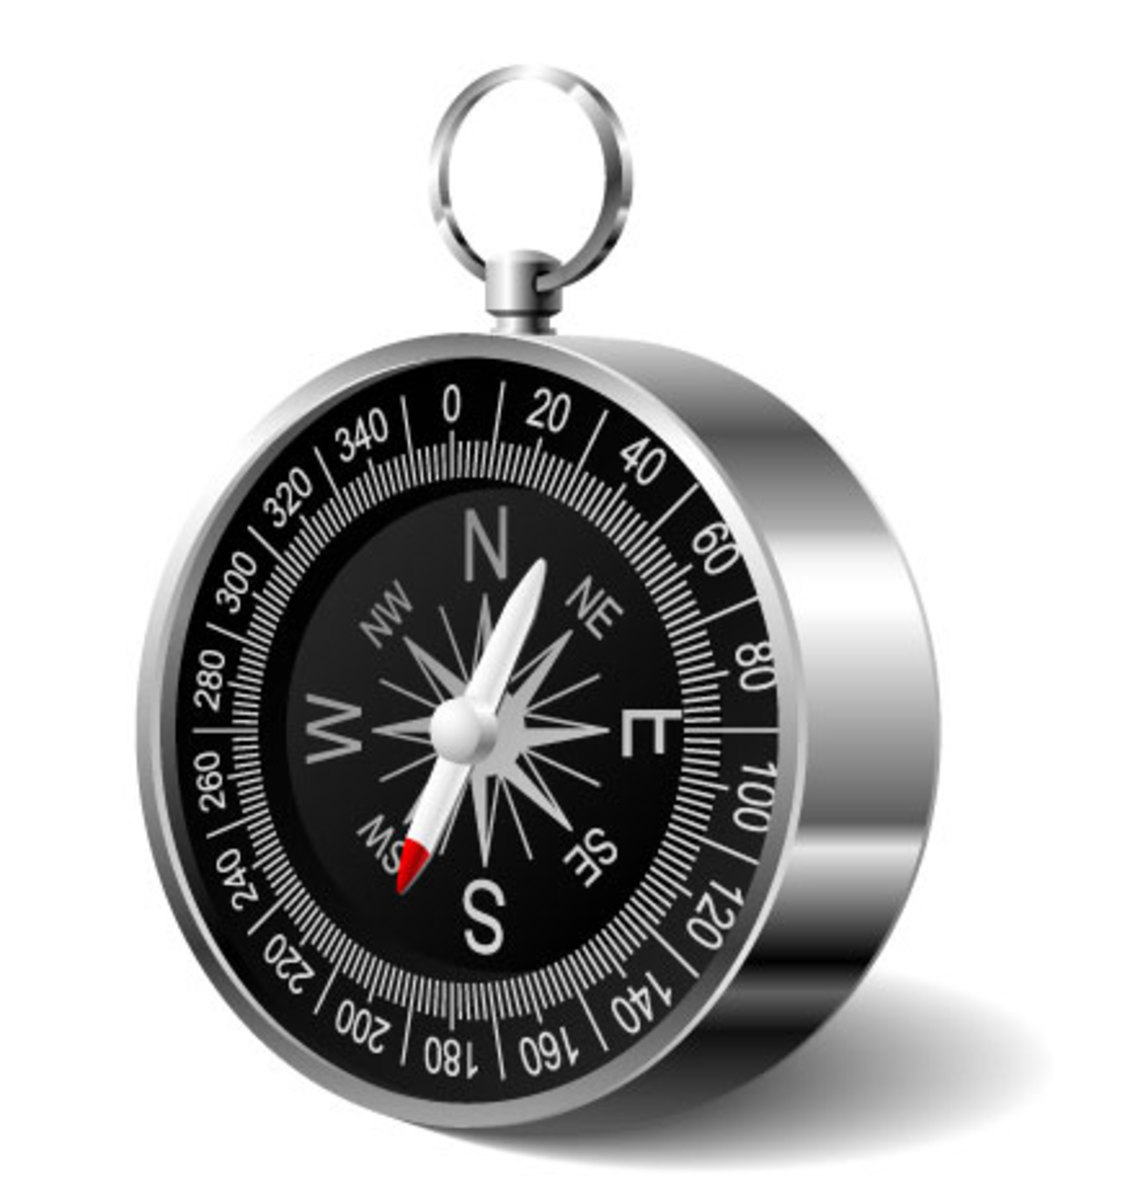 Although it might look simple. A compass helped thousands of voyagers before and today reach their destination in both sea or land expeditions.